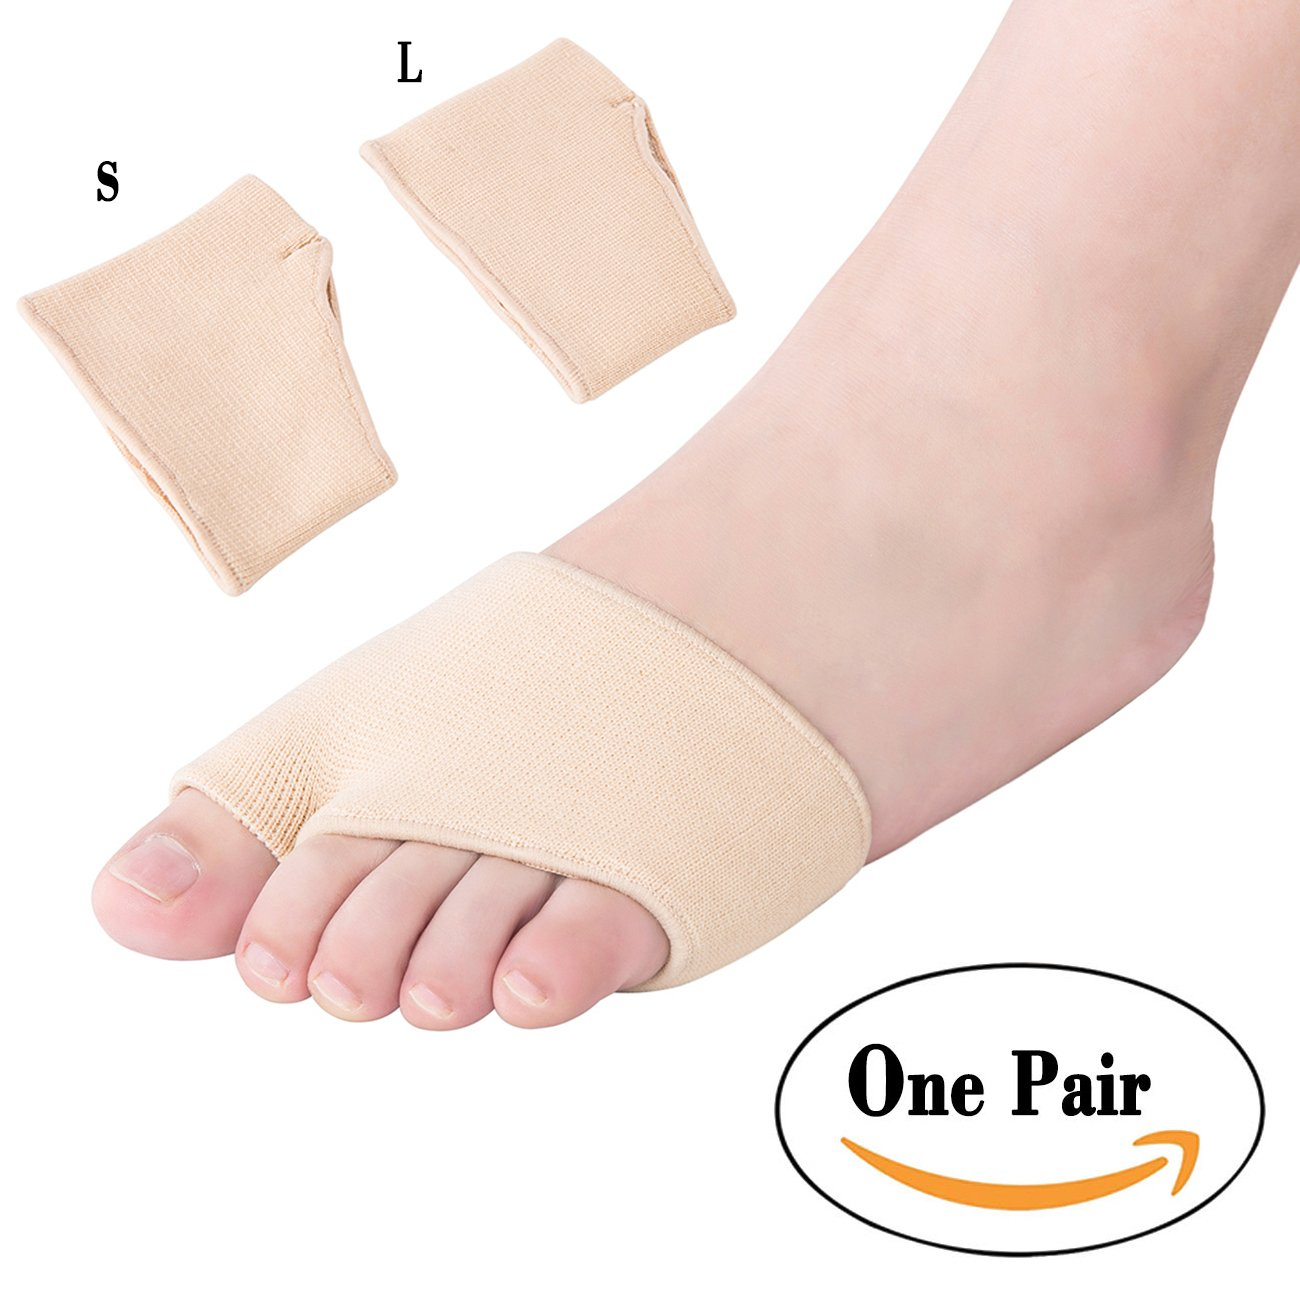 Dr. Kong Bunion Sleeves Half Socks Forefoot Cushions To Relief Forefoot Pain Bunion Aid Corrector (S) by Dr. Kong